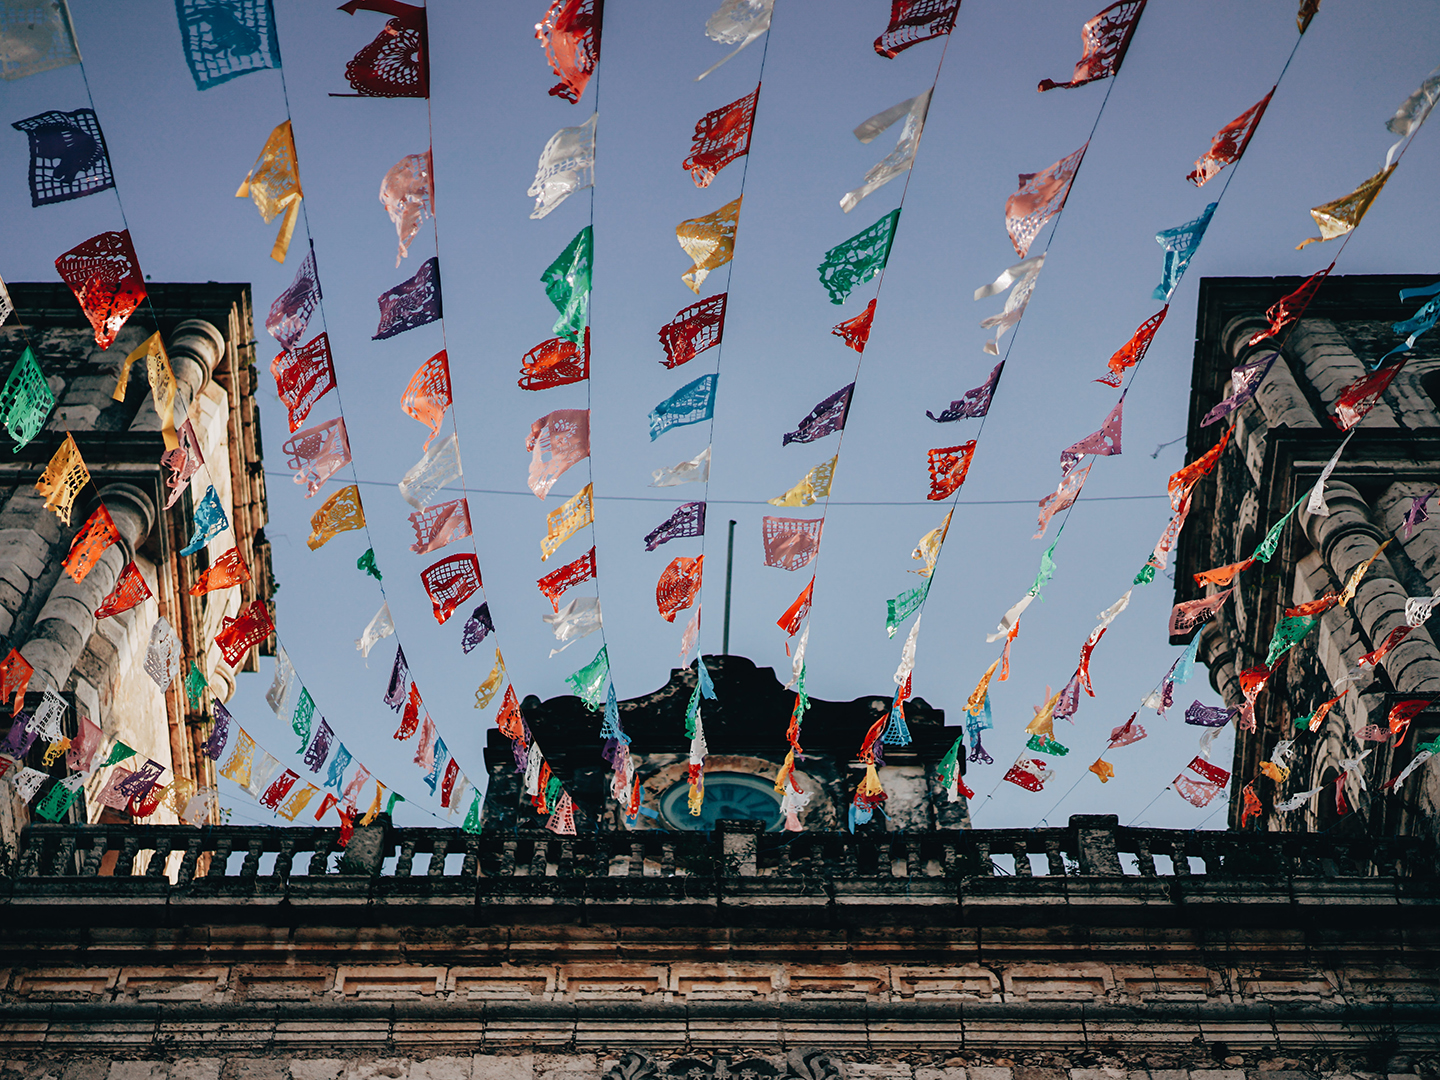 Colorful flags waving in the wind